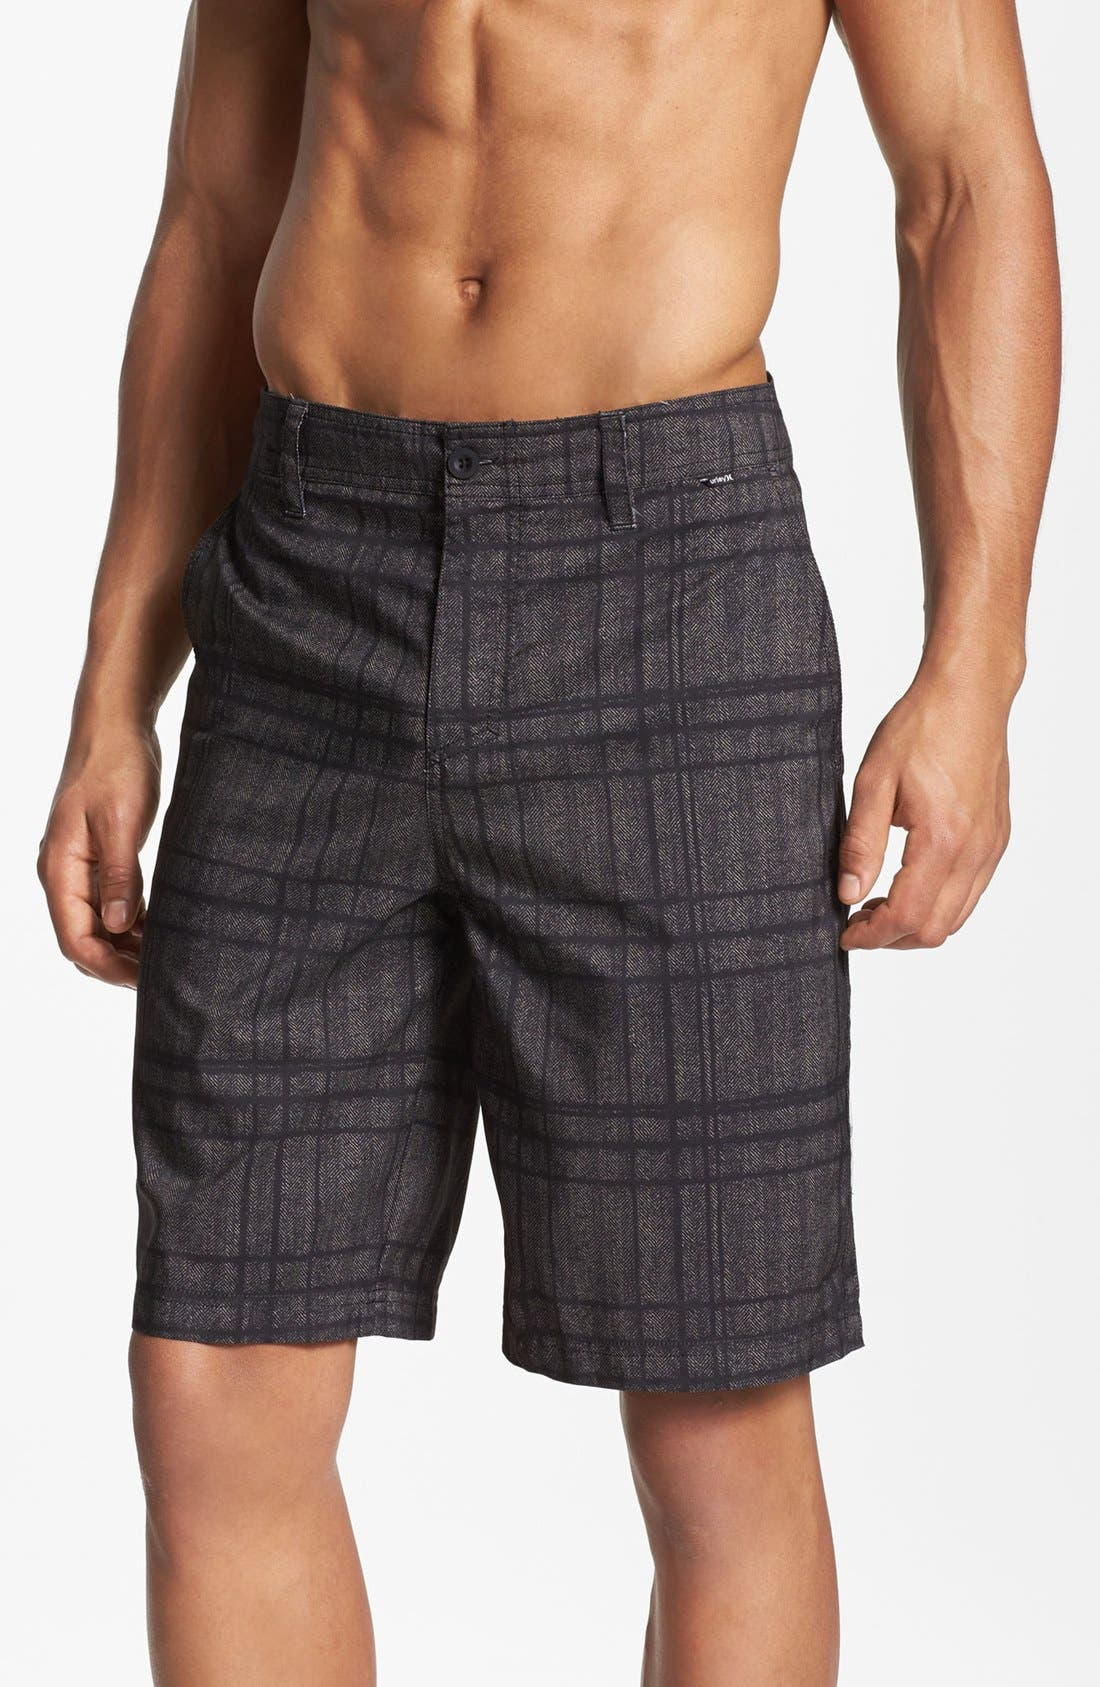 Alternate Image 1 Selected - Hurley 'Marina Intersect' Hybrid Shorts